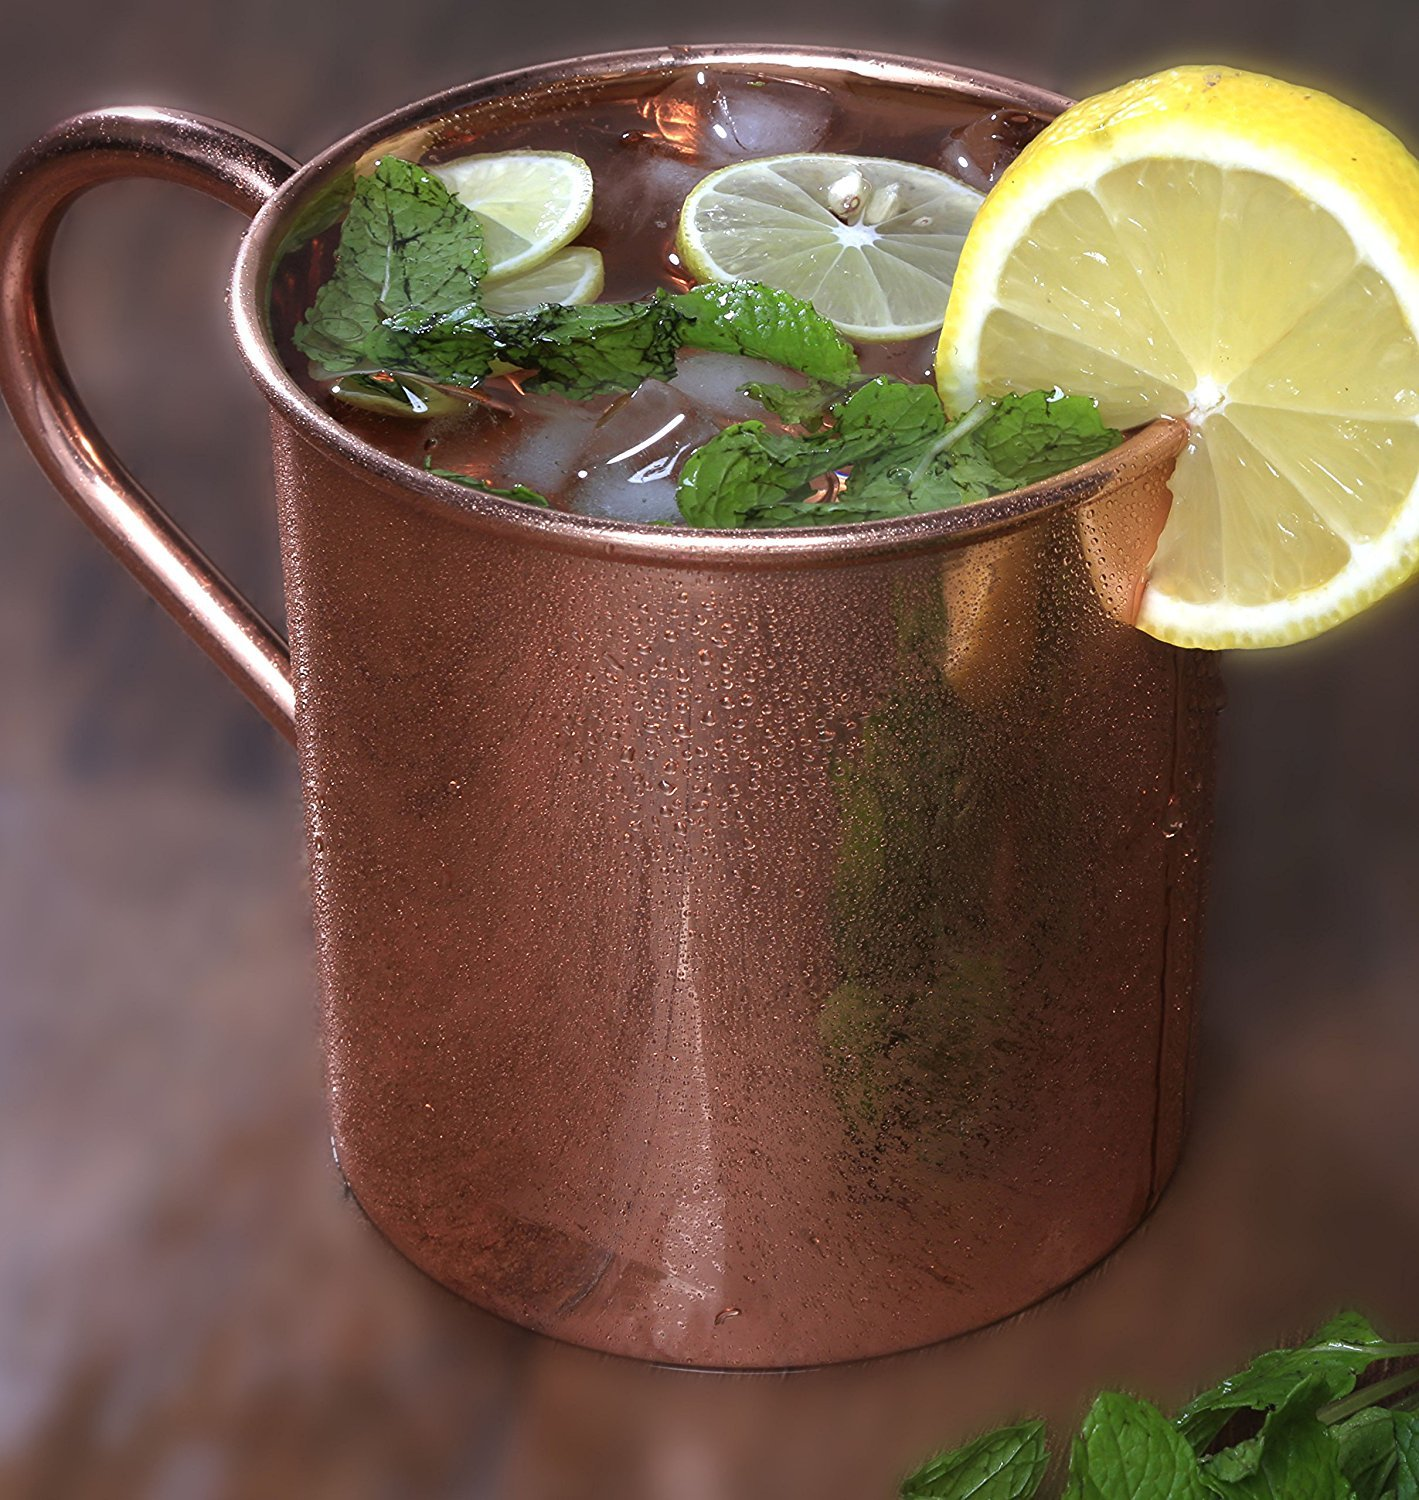 Panchal Creation Set of 24 Copper Classic Mug for Moscow Mules - 16 oz - 100% Pure Copper - Heavy Gauge - No lining by Panchal Creation (Image #1)